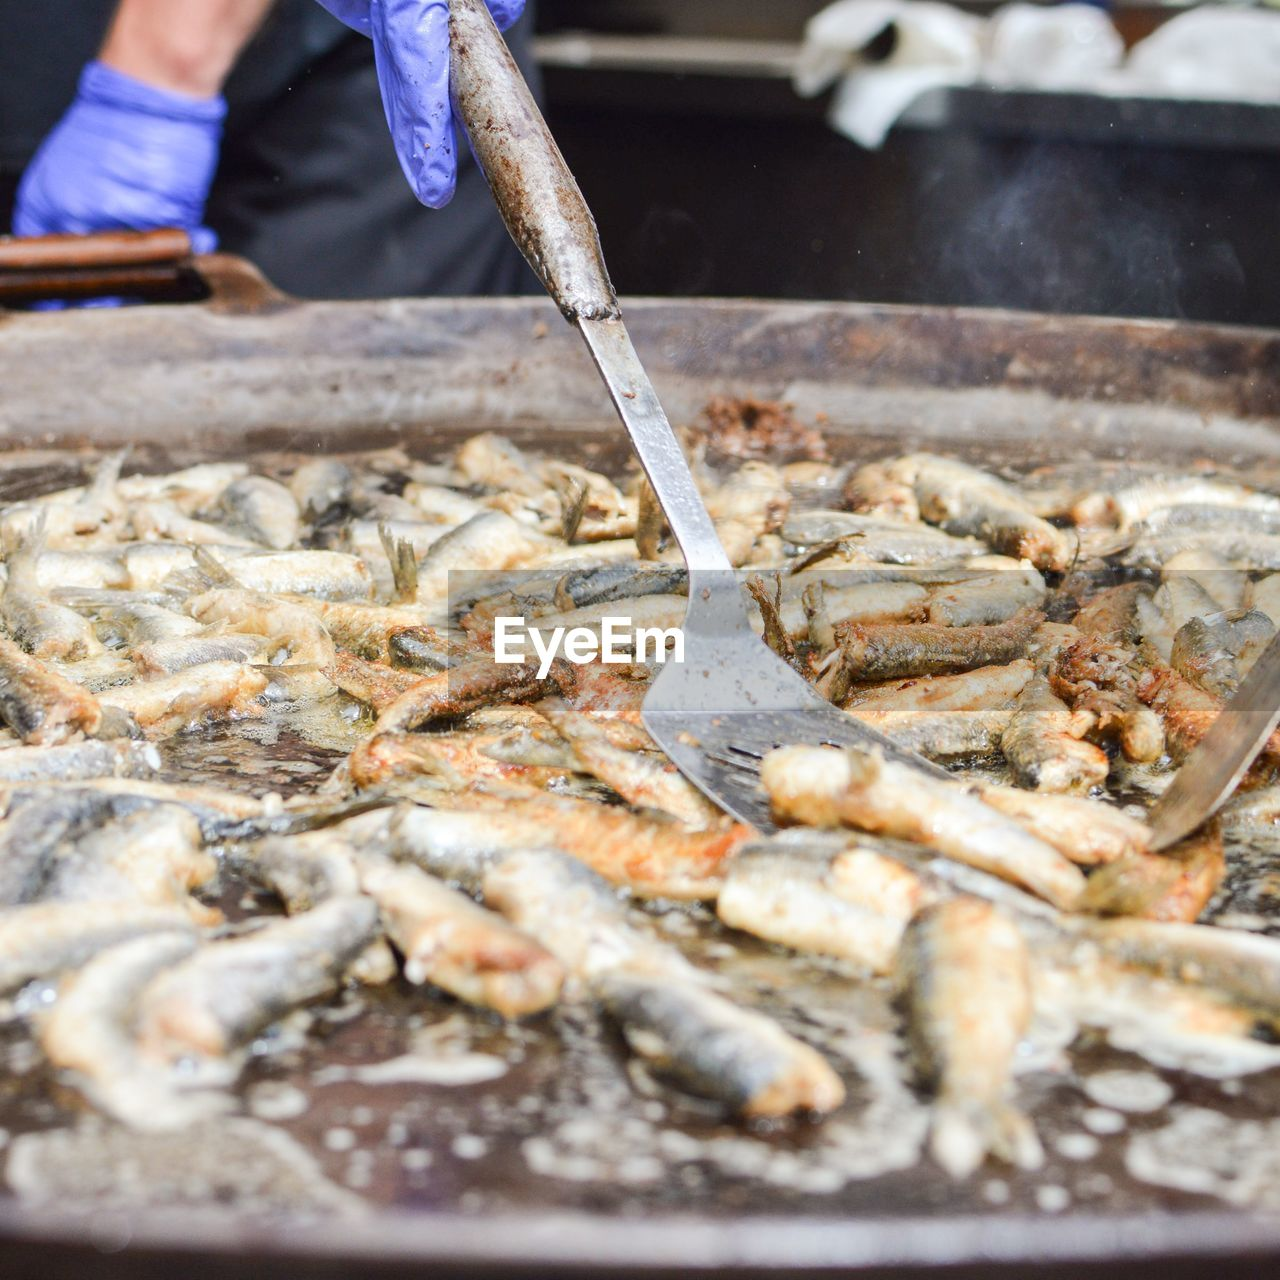 food, food and drink, freshness, seafood, preparation, one person, real people, preparing food, fish, human hand, hand, working, market, kitchen utensil, occupation, vertebrate, wellbeing, holding, healthy eating, chef